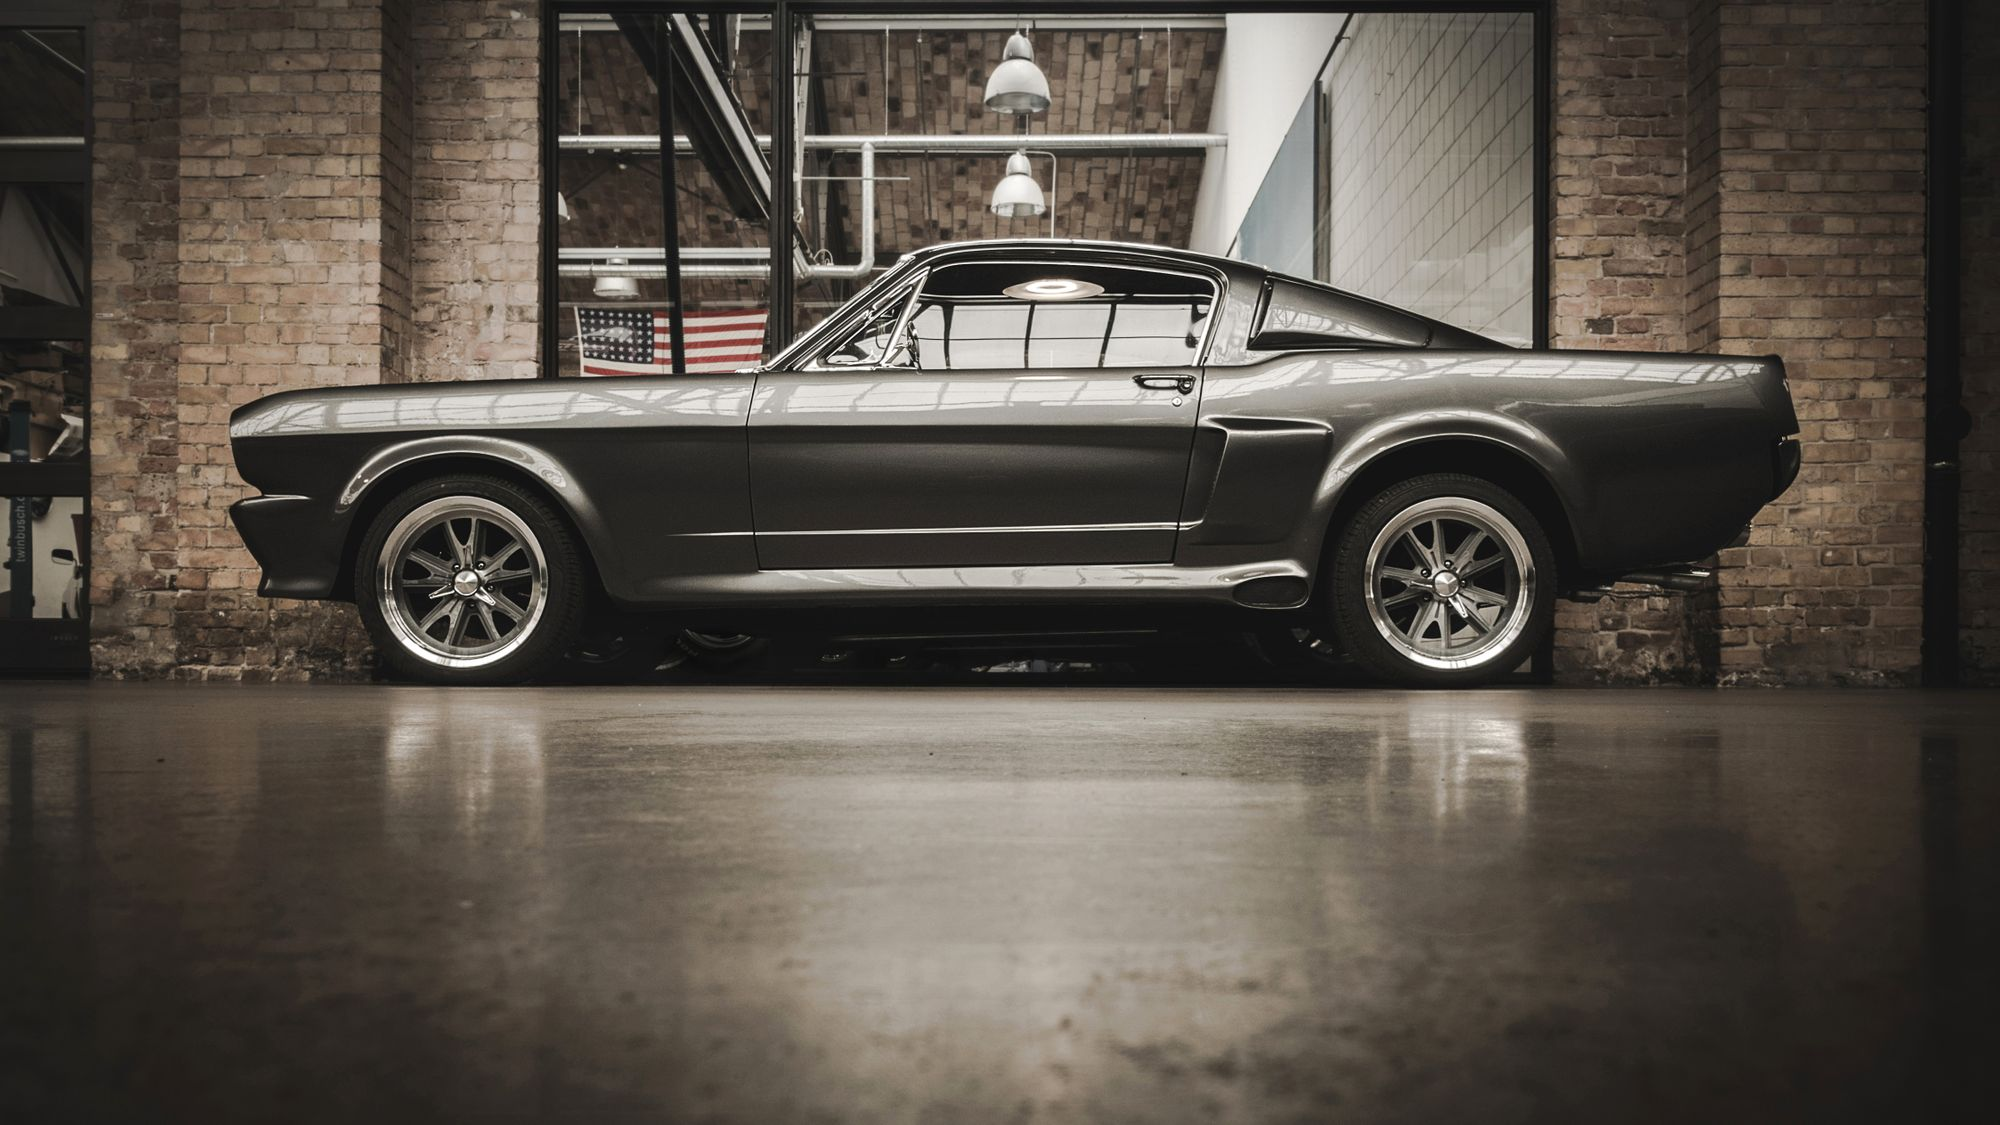 Ford Mustang από videoclip των Doors